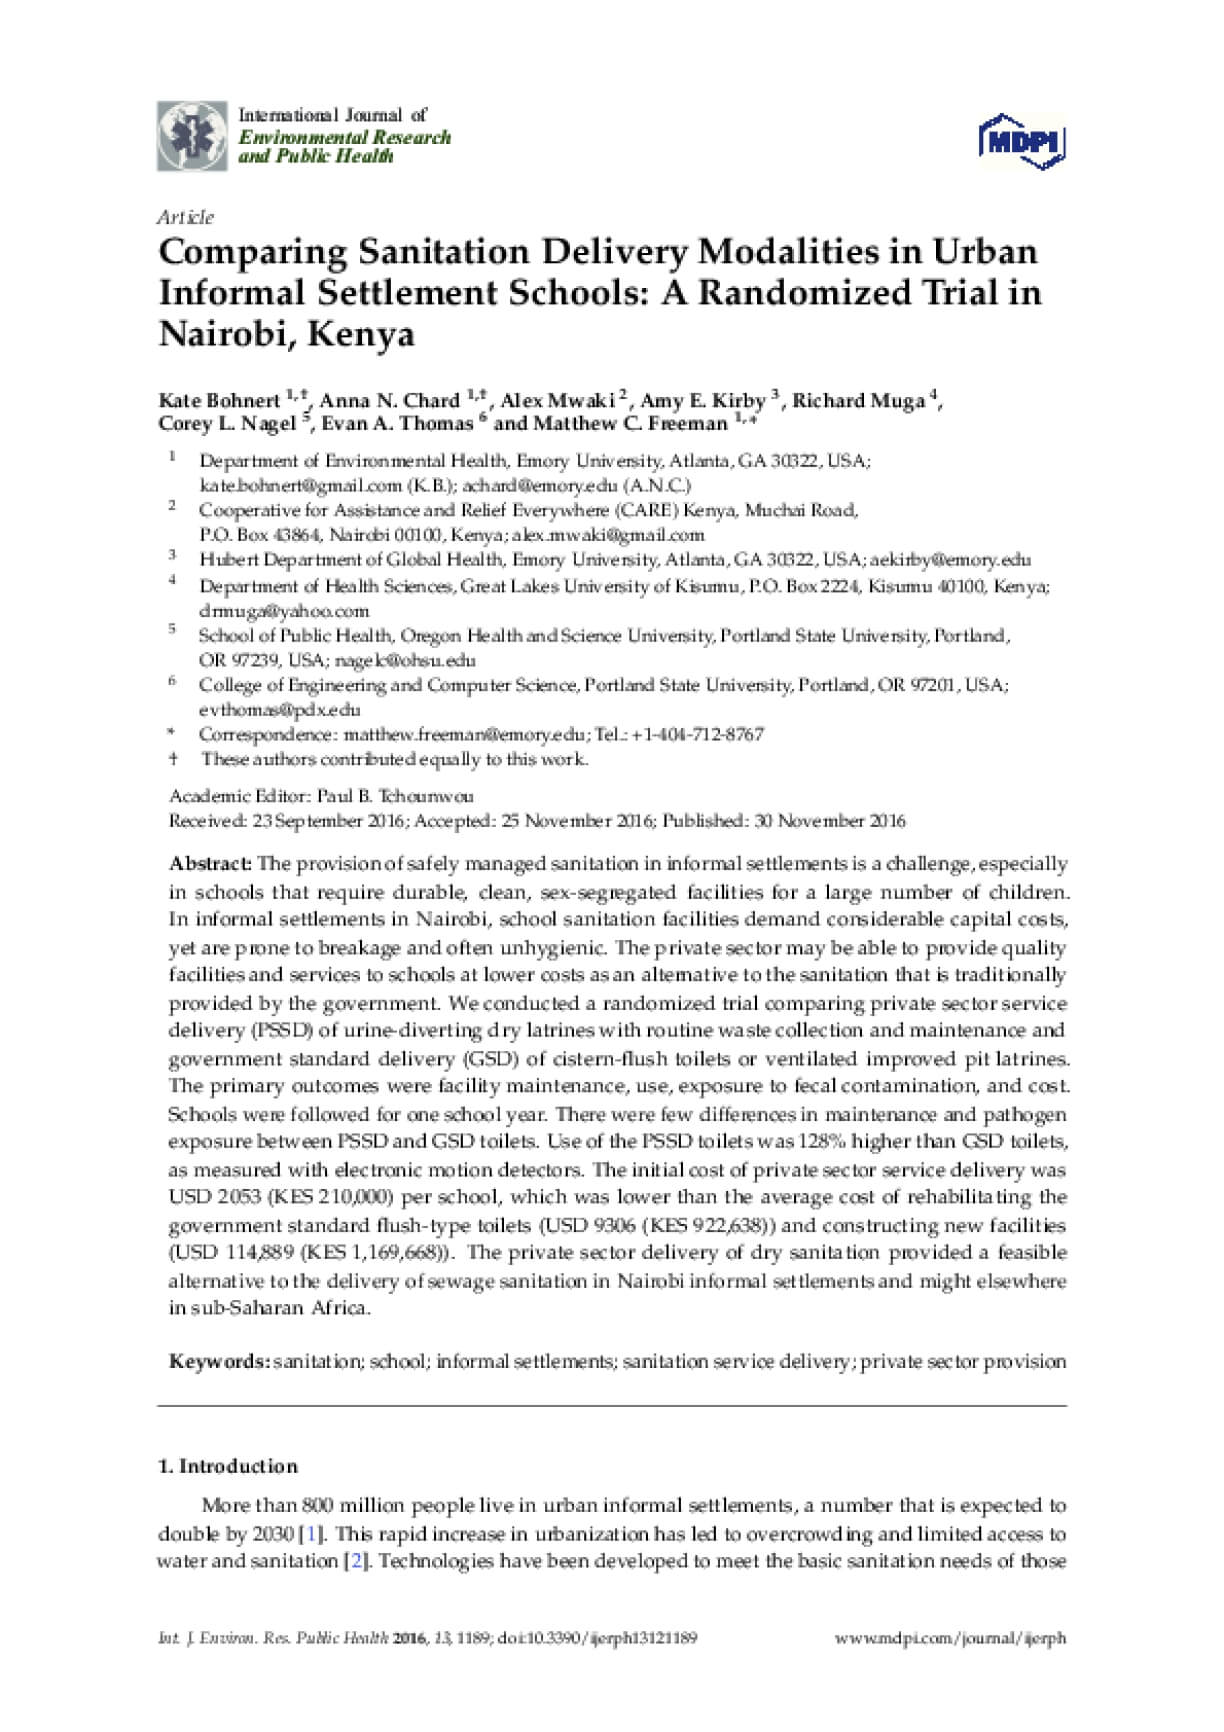 Comparing Sanitation Delivery Modalities in Urban Informal Settlement Schools: A Randomized Trial in Nairobi, Kenya